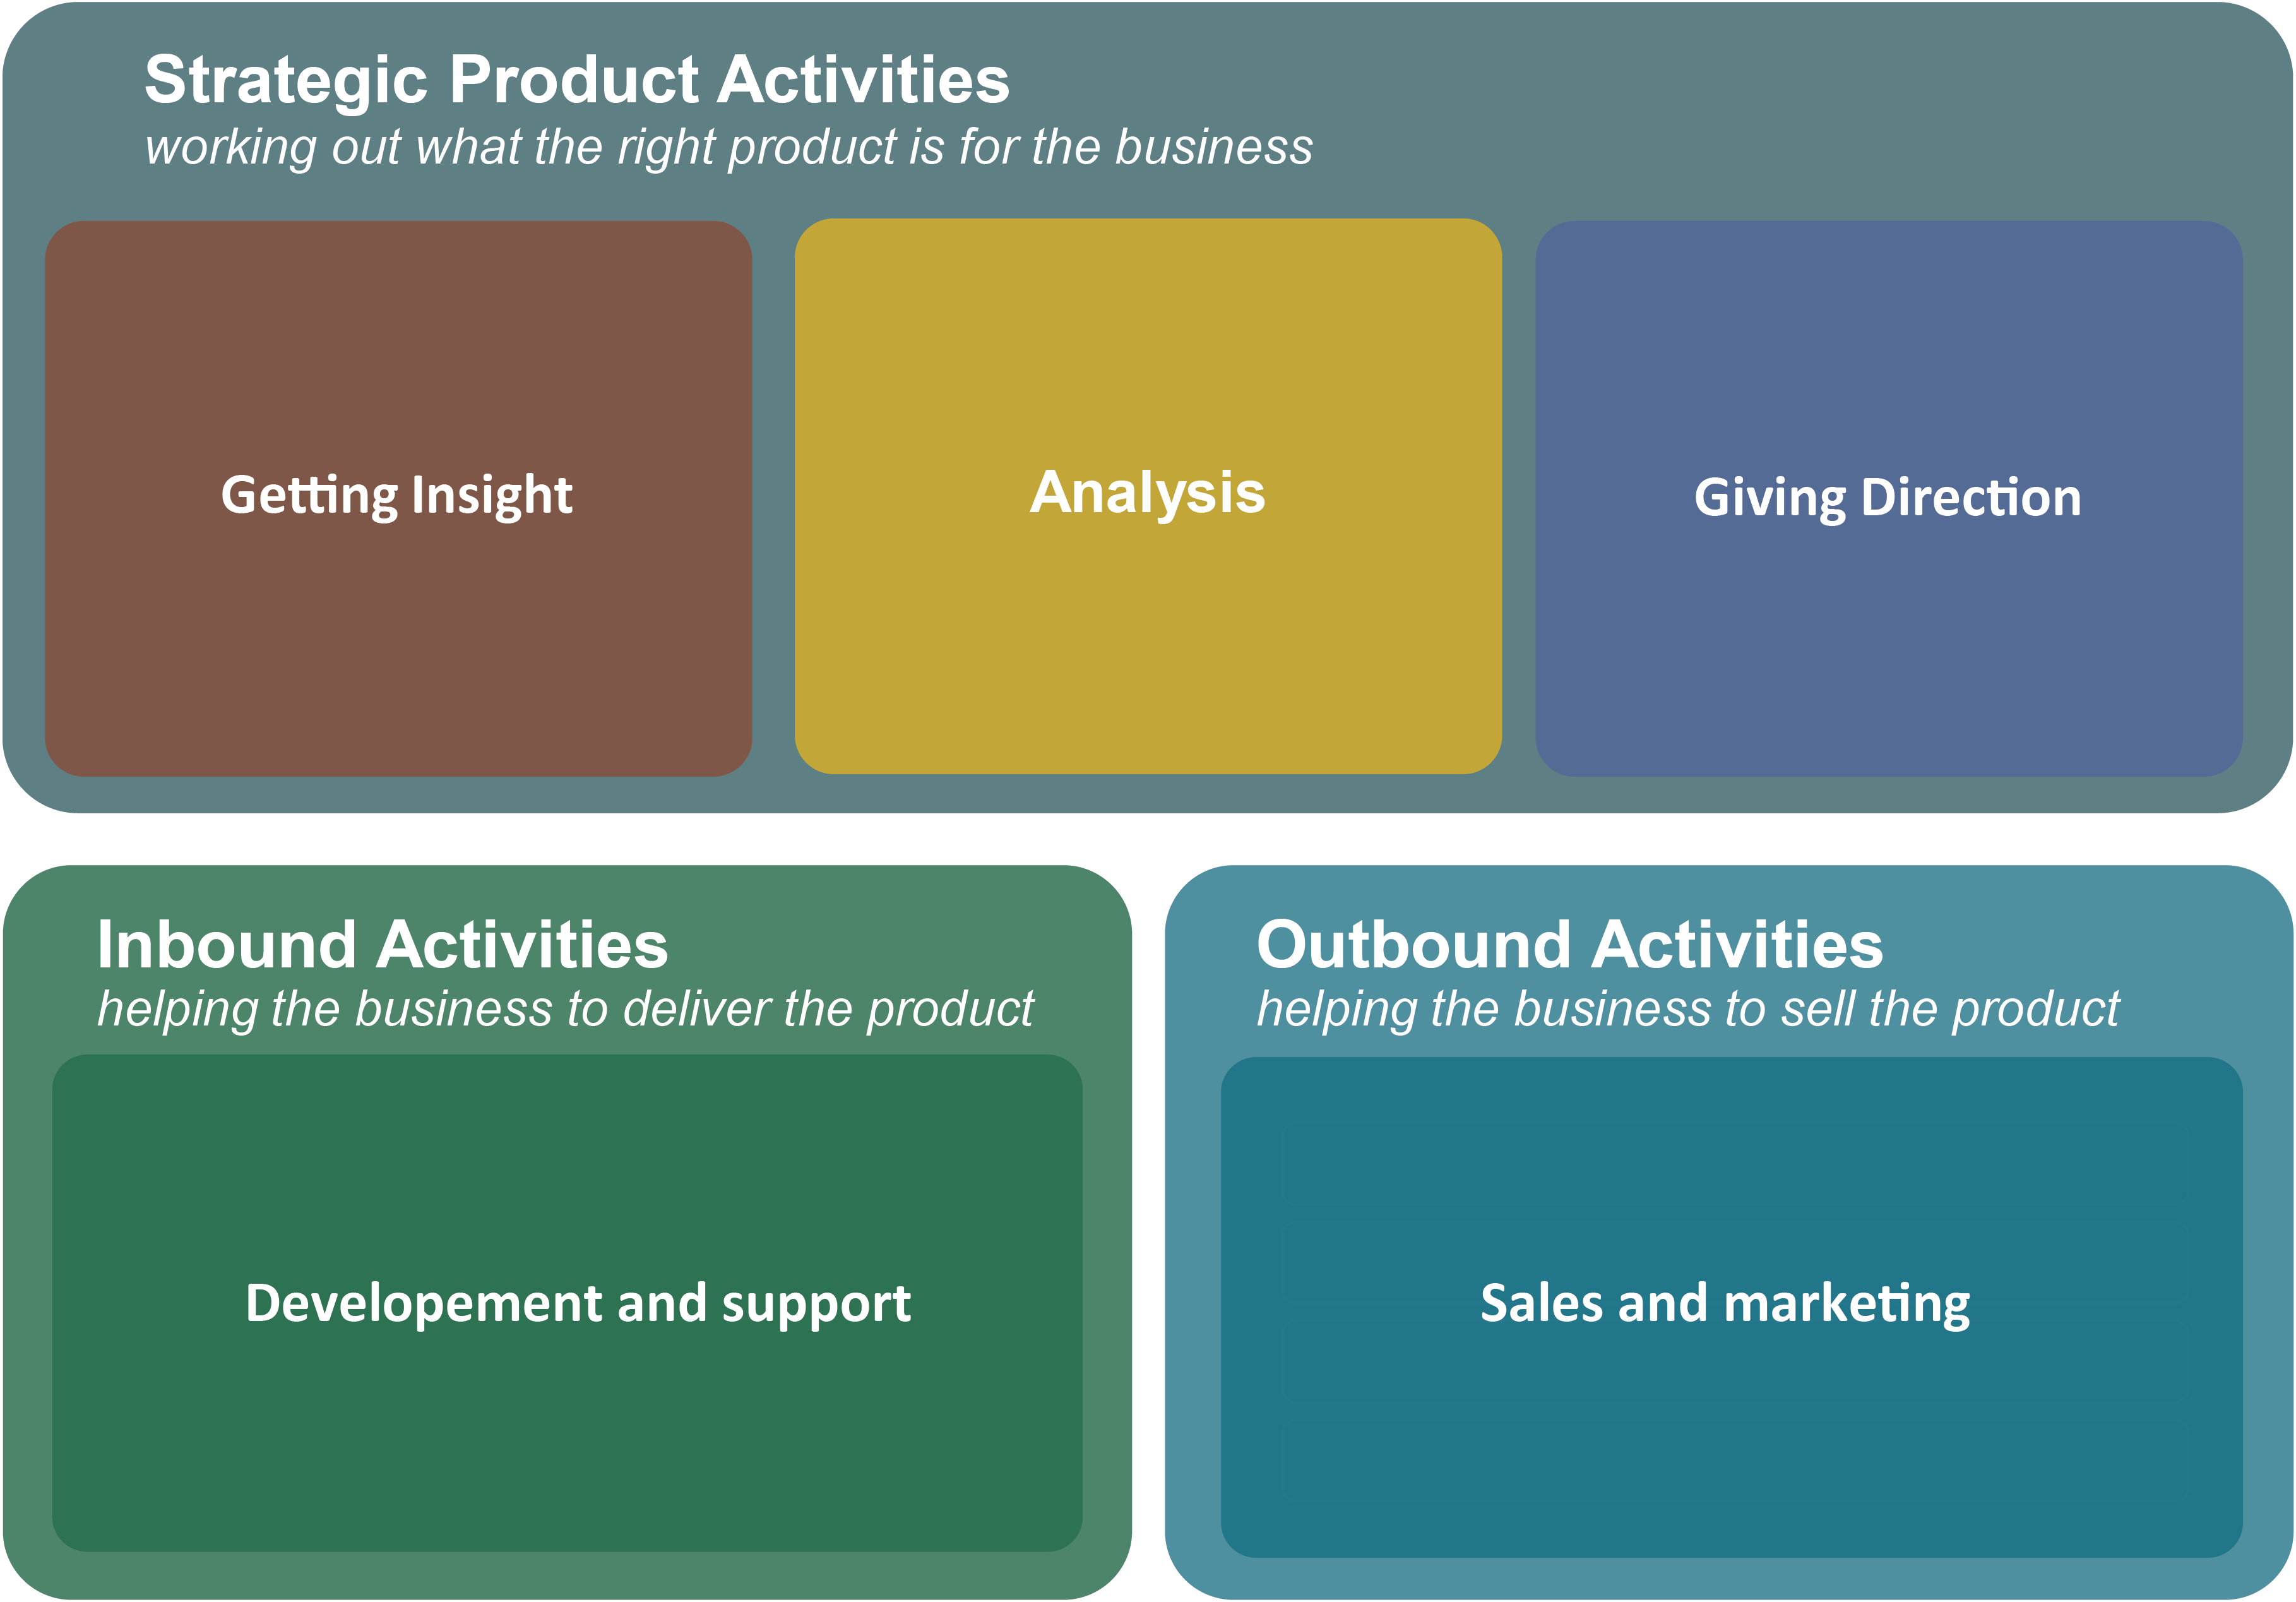 Product Activities Framework - useful when introducing product management